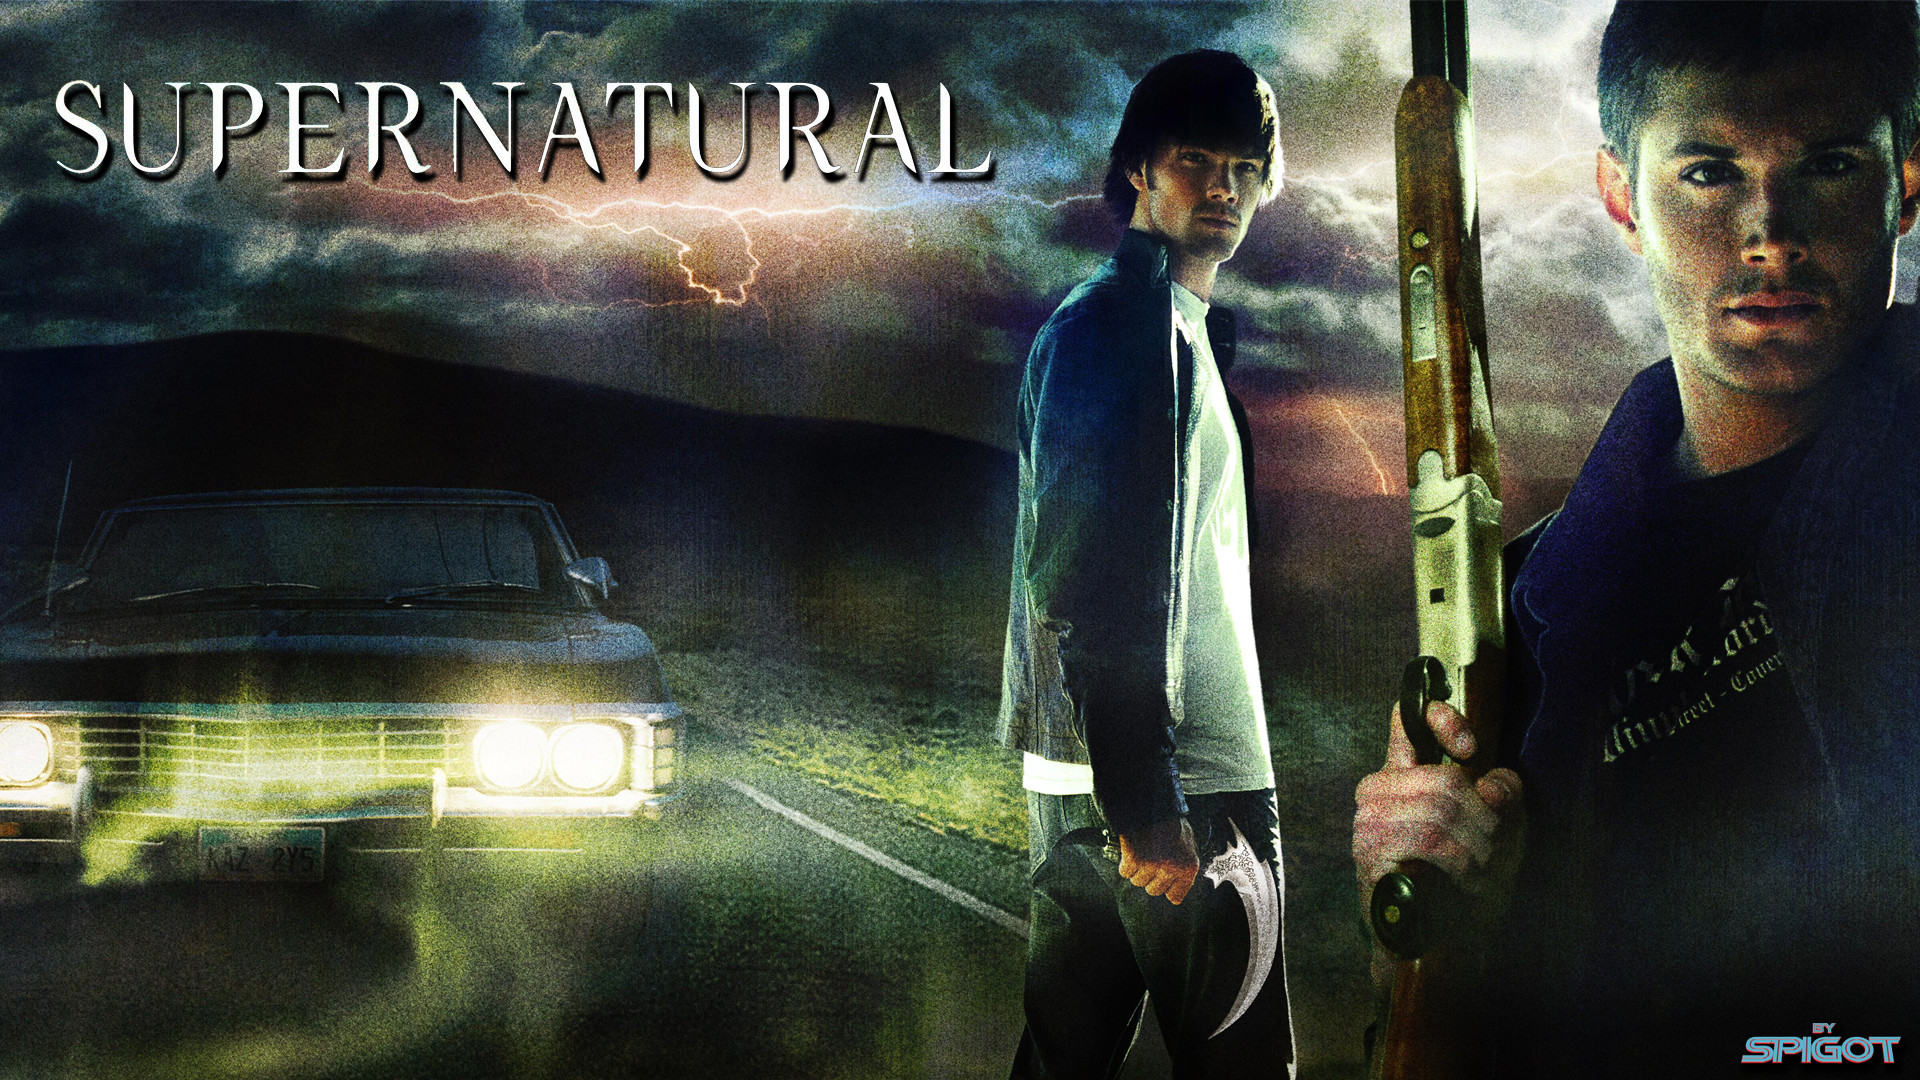 1920x1080 Supernatural Wallpapers. Advertisements